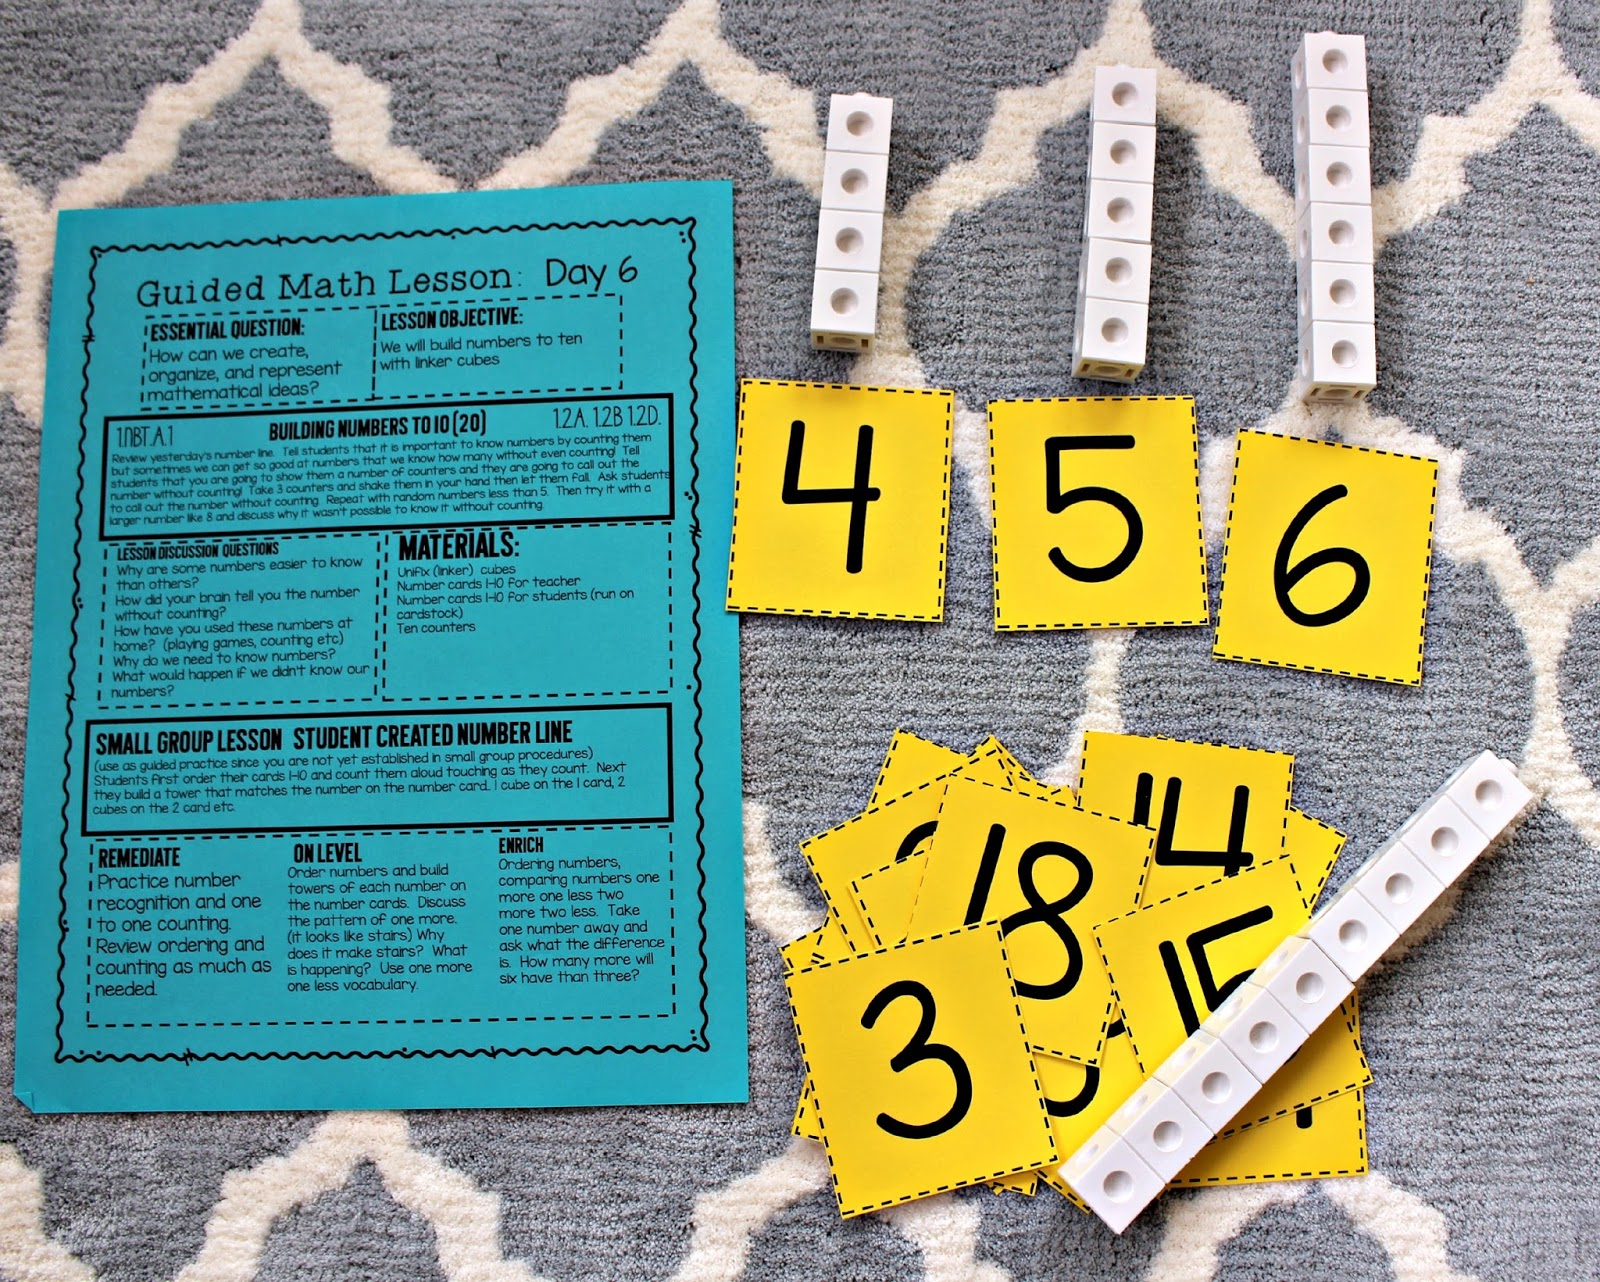 Number Sense Lesson Plans and Materials   Tunstall s Teaching Tidbits Number Sense Lesson Plans and Materials